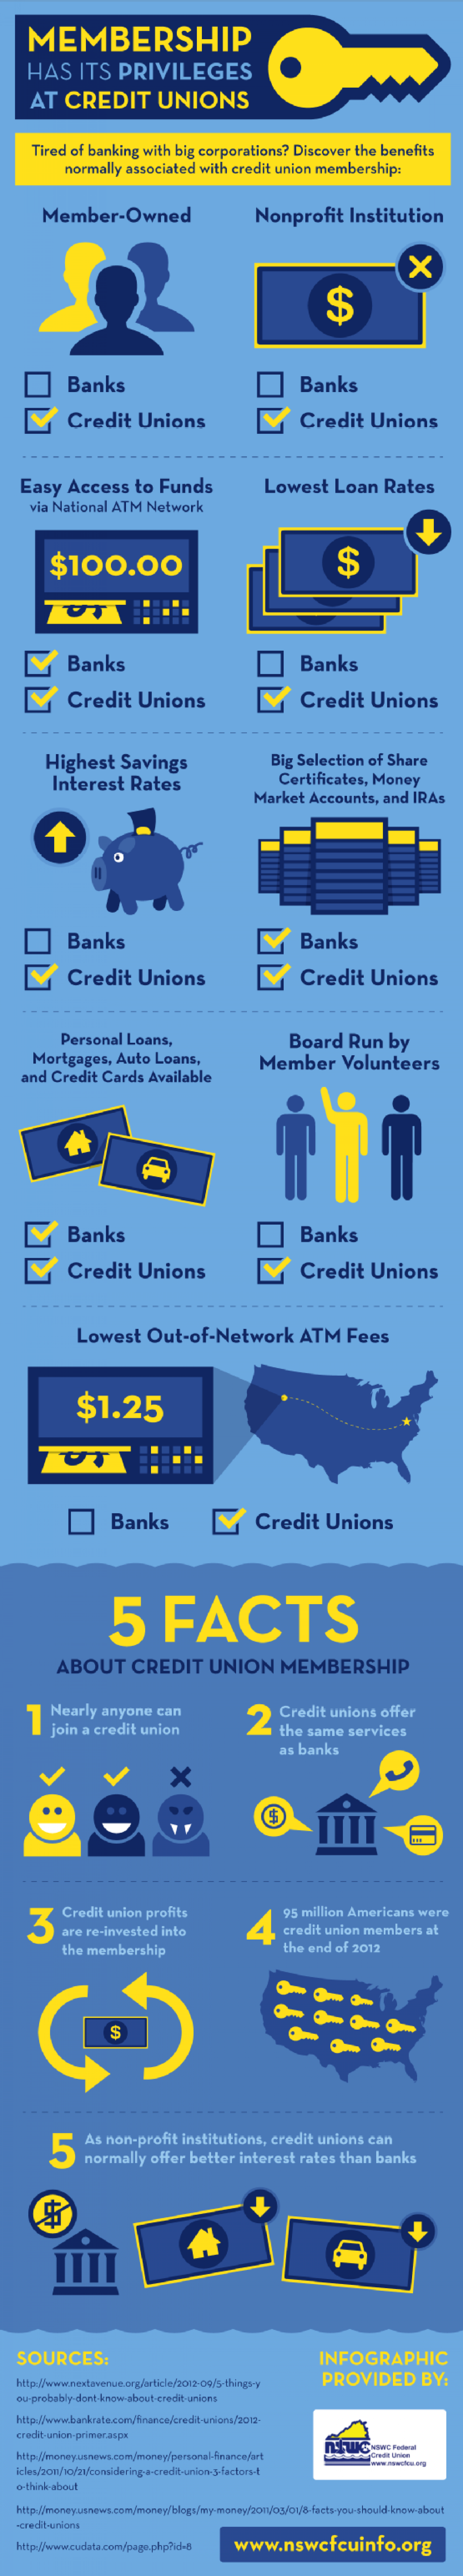 Membership Has Its Privileges at Credit Unions  Infographic